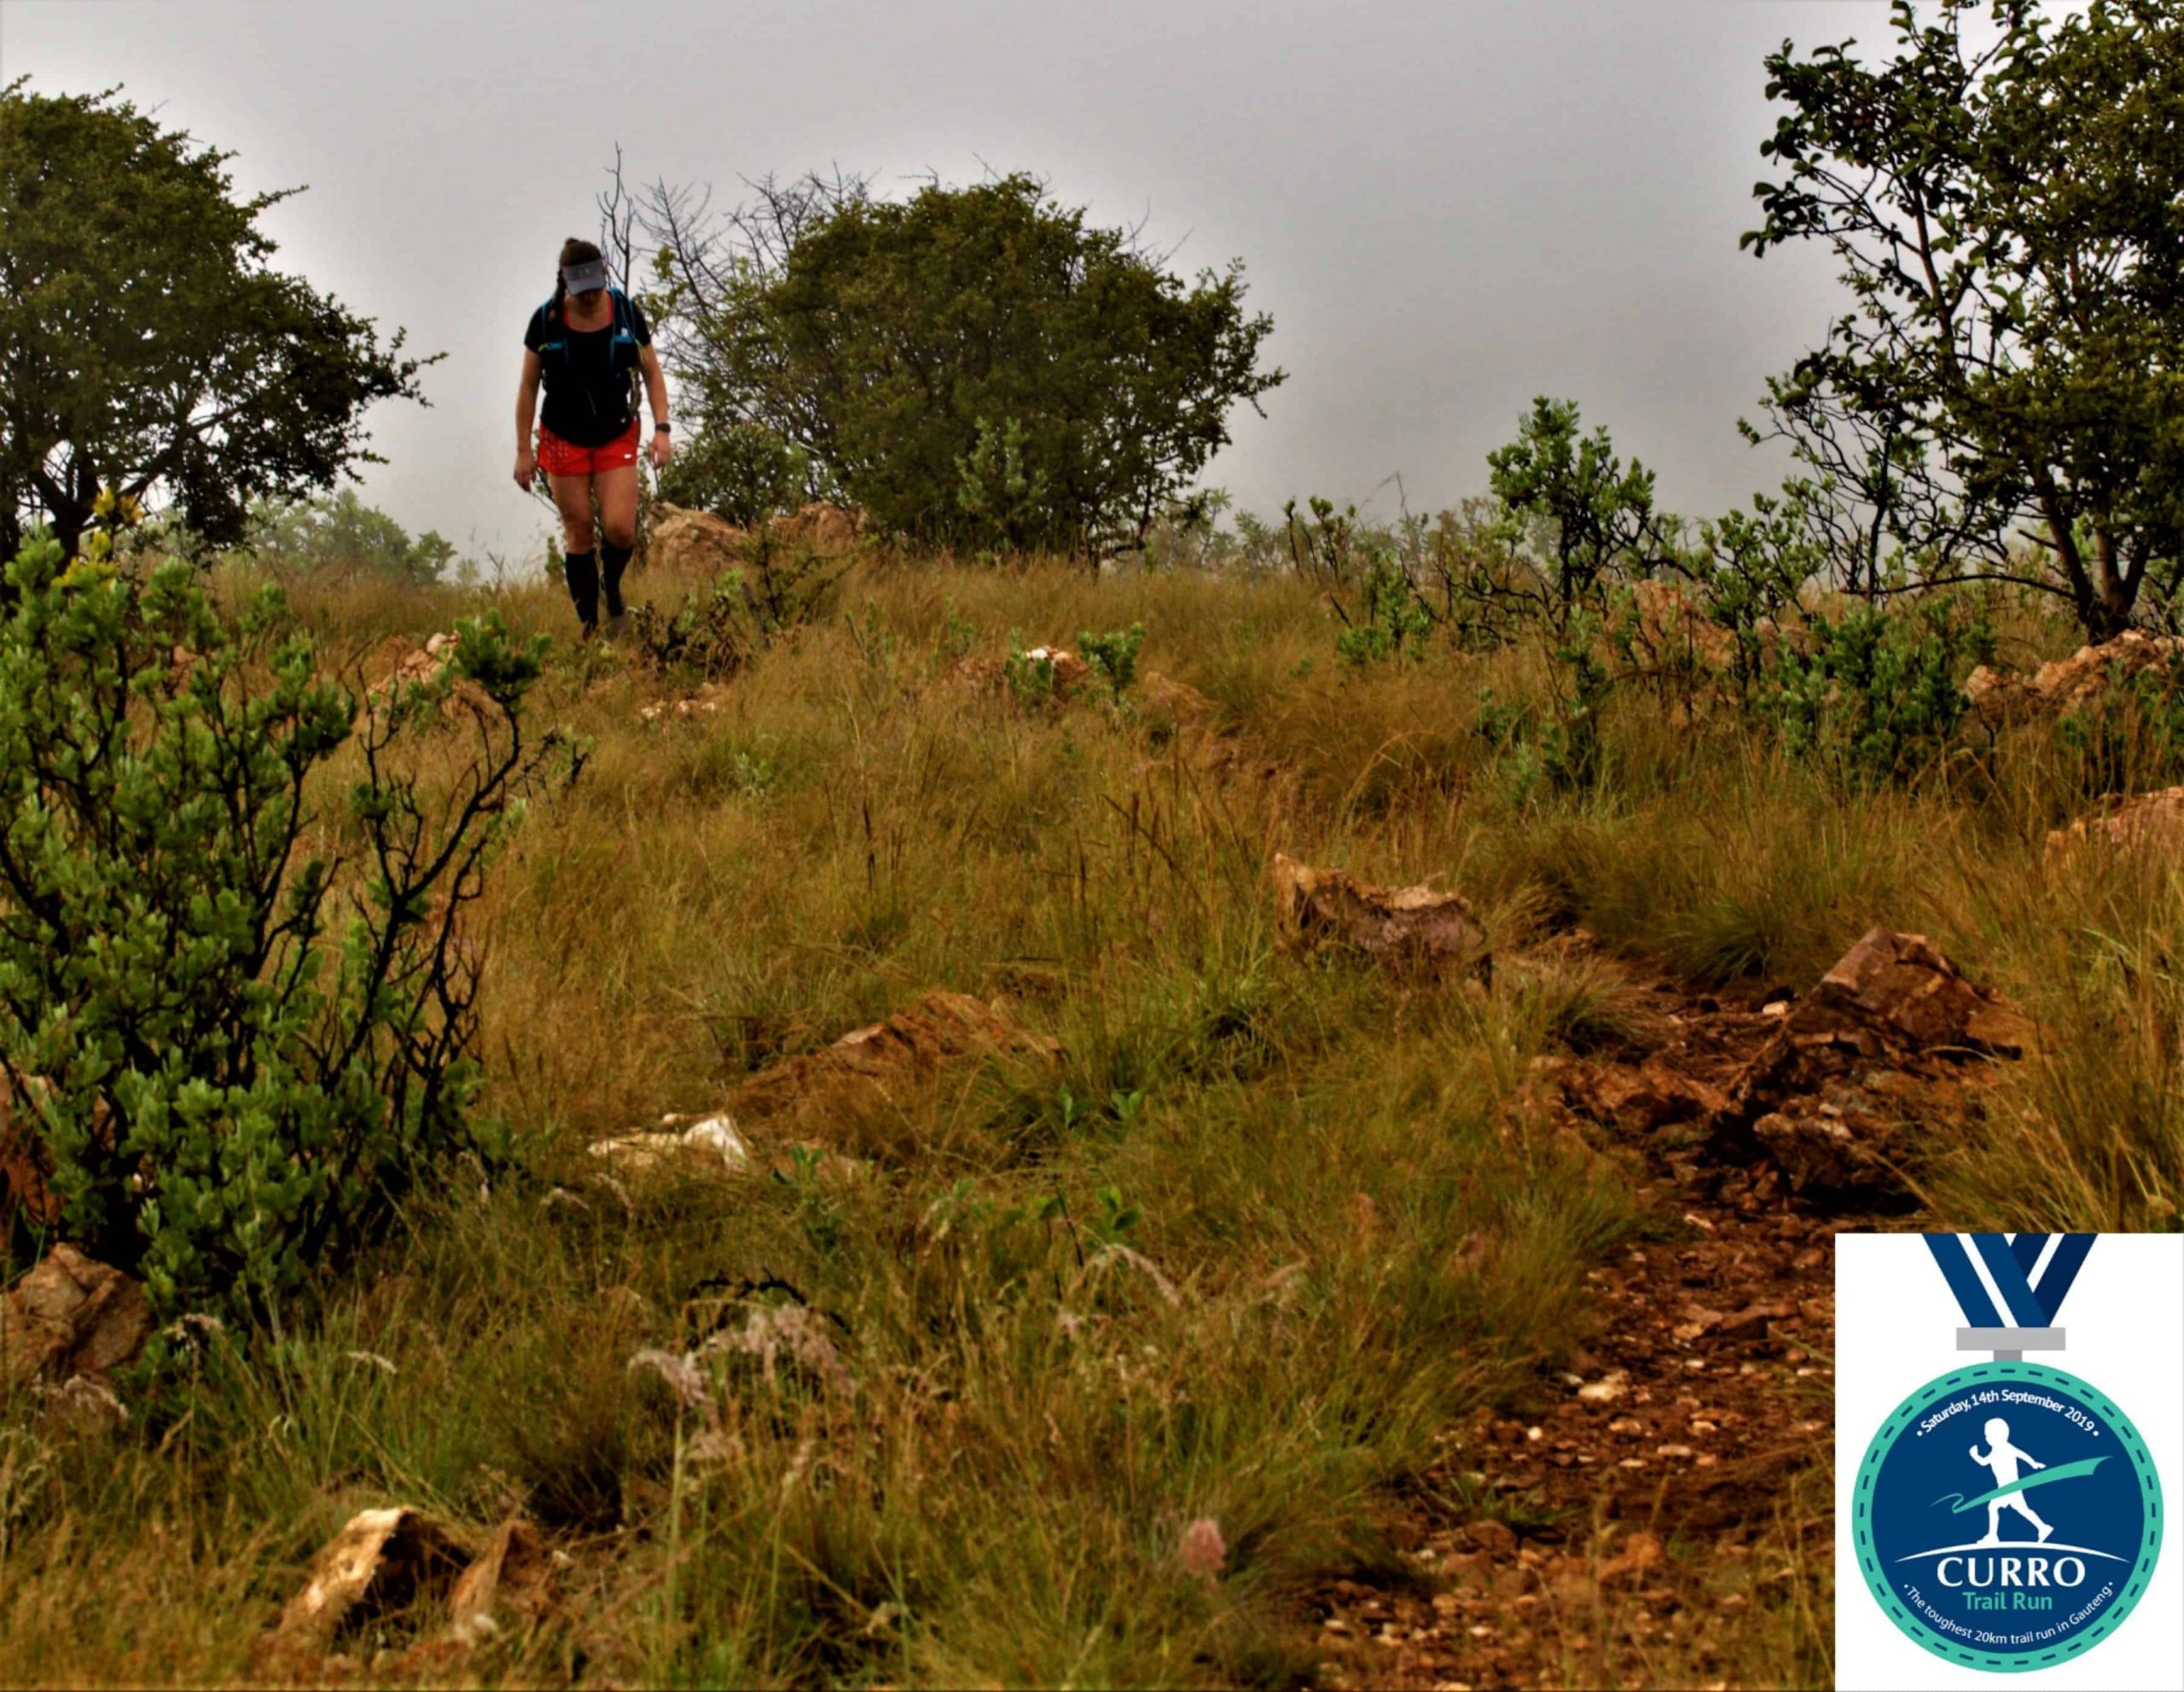 Curro Trail Run | Runner's World Race Calendar